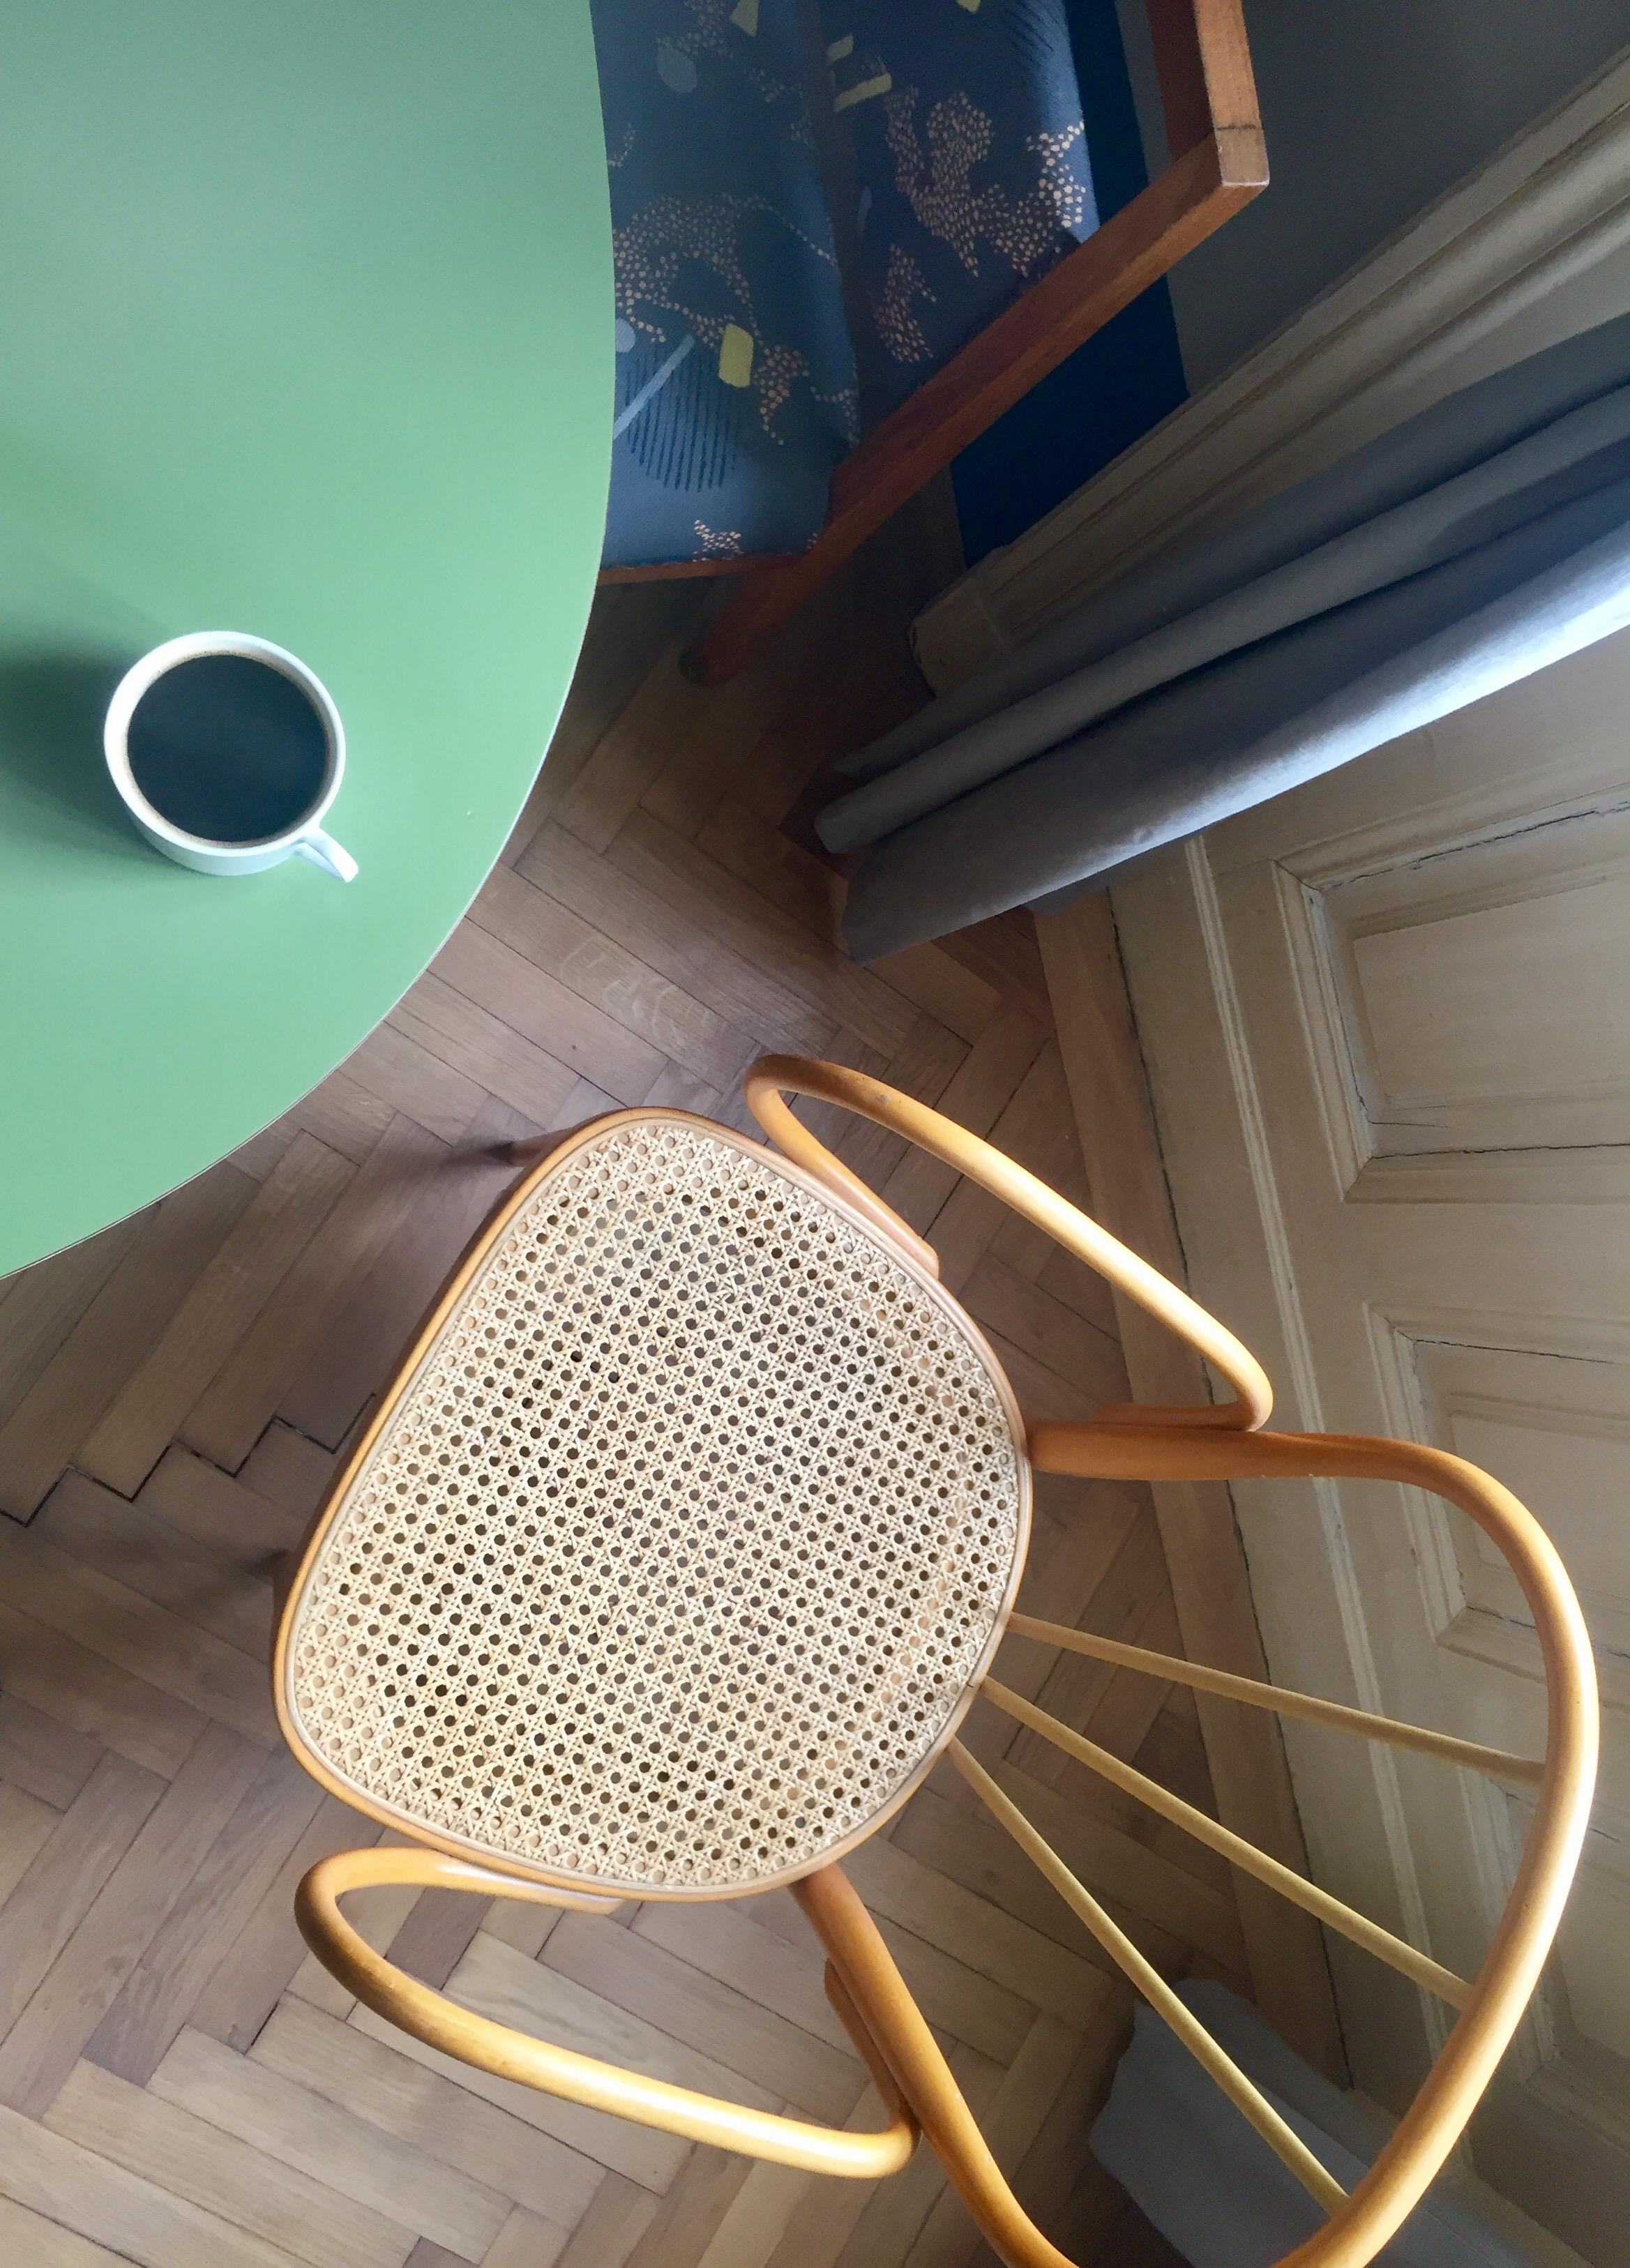 Thonet & Coffee #vintageliebe #budapest #goodmorning